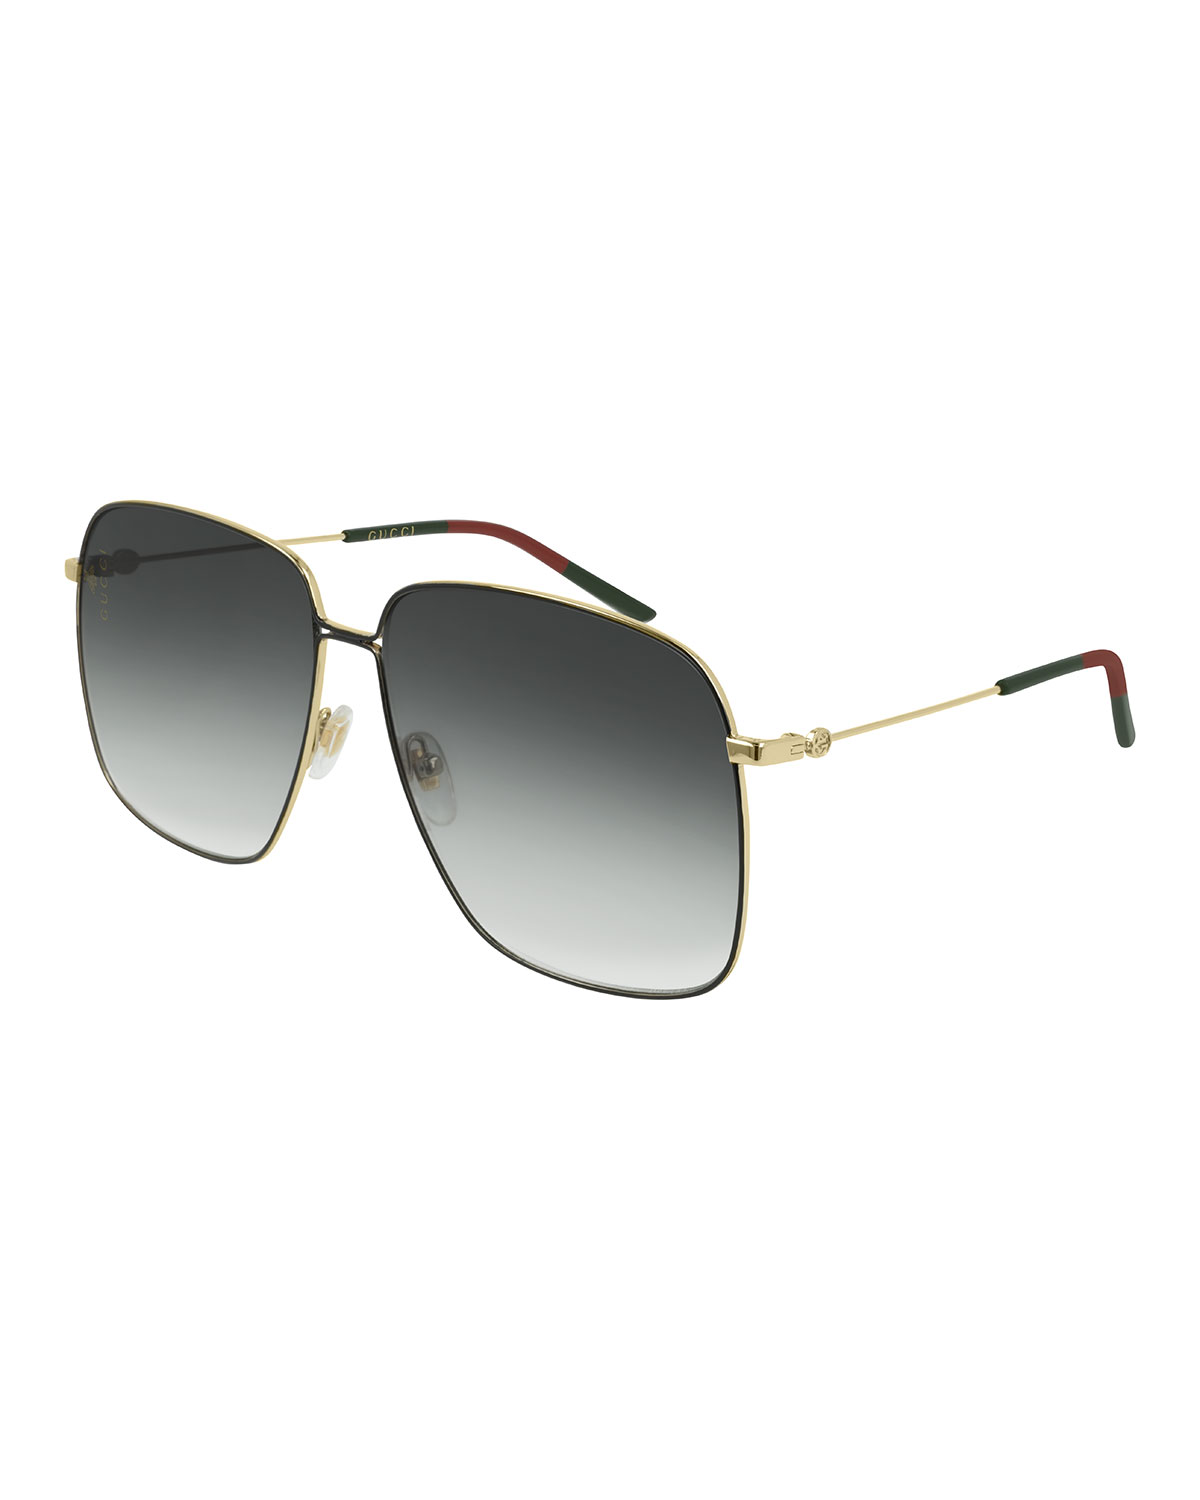 Gucci Sunglasses Square Metal Sunglasses w/ Web Ear Tips